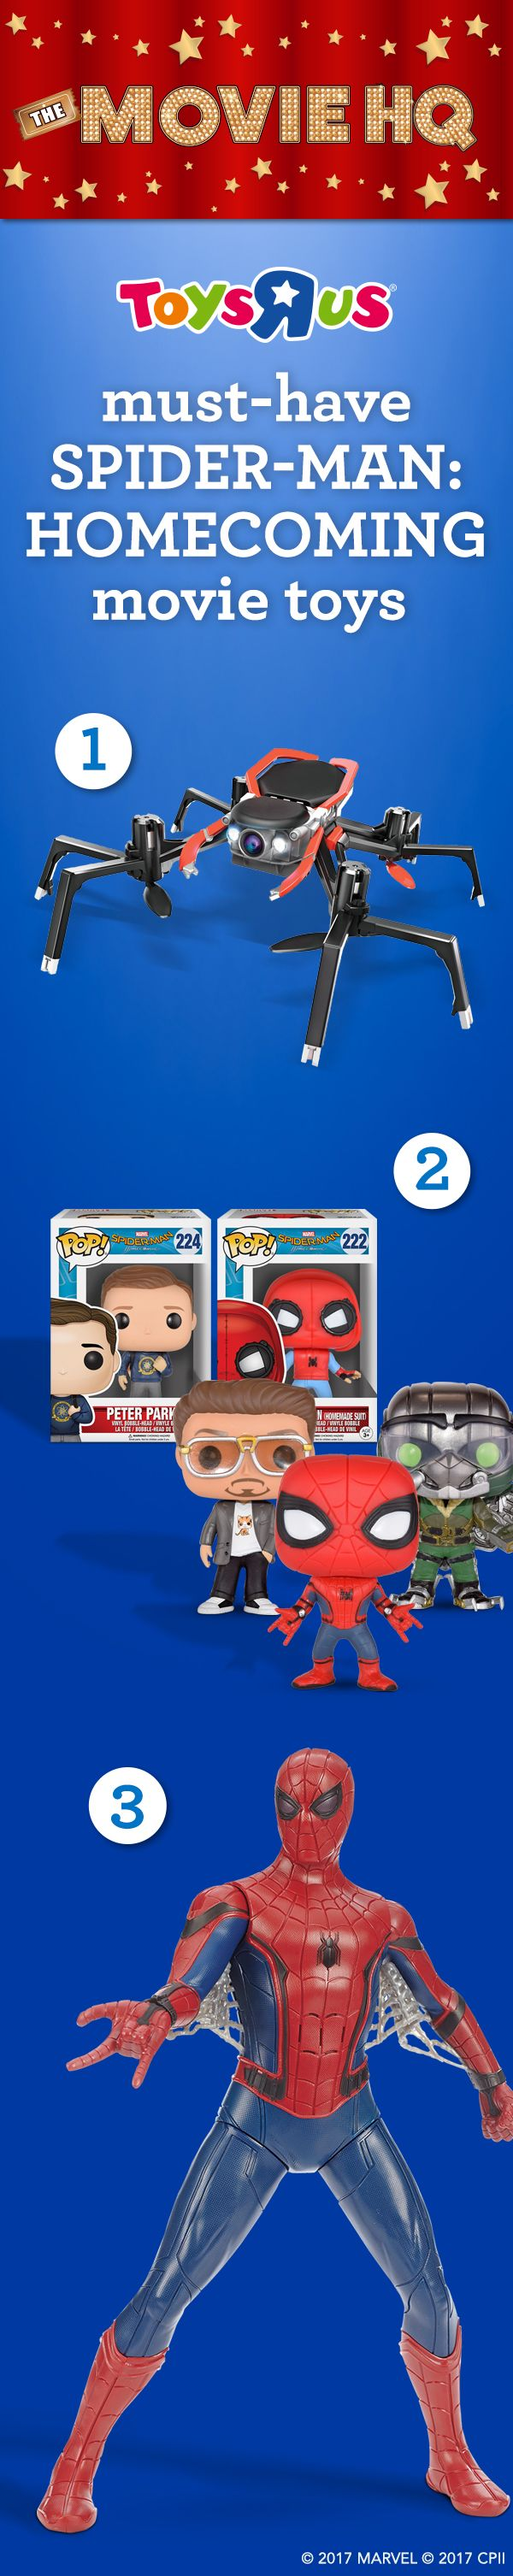 "Looking to ensnare some spectacular Spider-Man: Homecoming toys for that special Spider-fan in your life? You can be the hero, and pick up these must-haves in store & online: 1. Official Movie Edition Streaming Video Spider-Drone by Sky Viper; 2. Funko POP! Vinyl figures; 3. 15"" Tech Suit Spider-Man Action Figure. Get the toys, see the movie—in theaters NOW! #TRUMovieHQ"